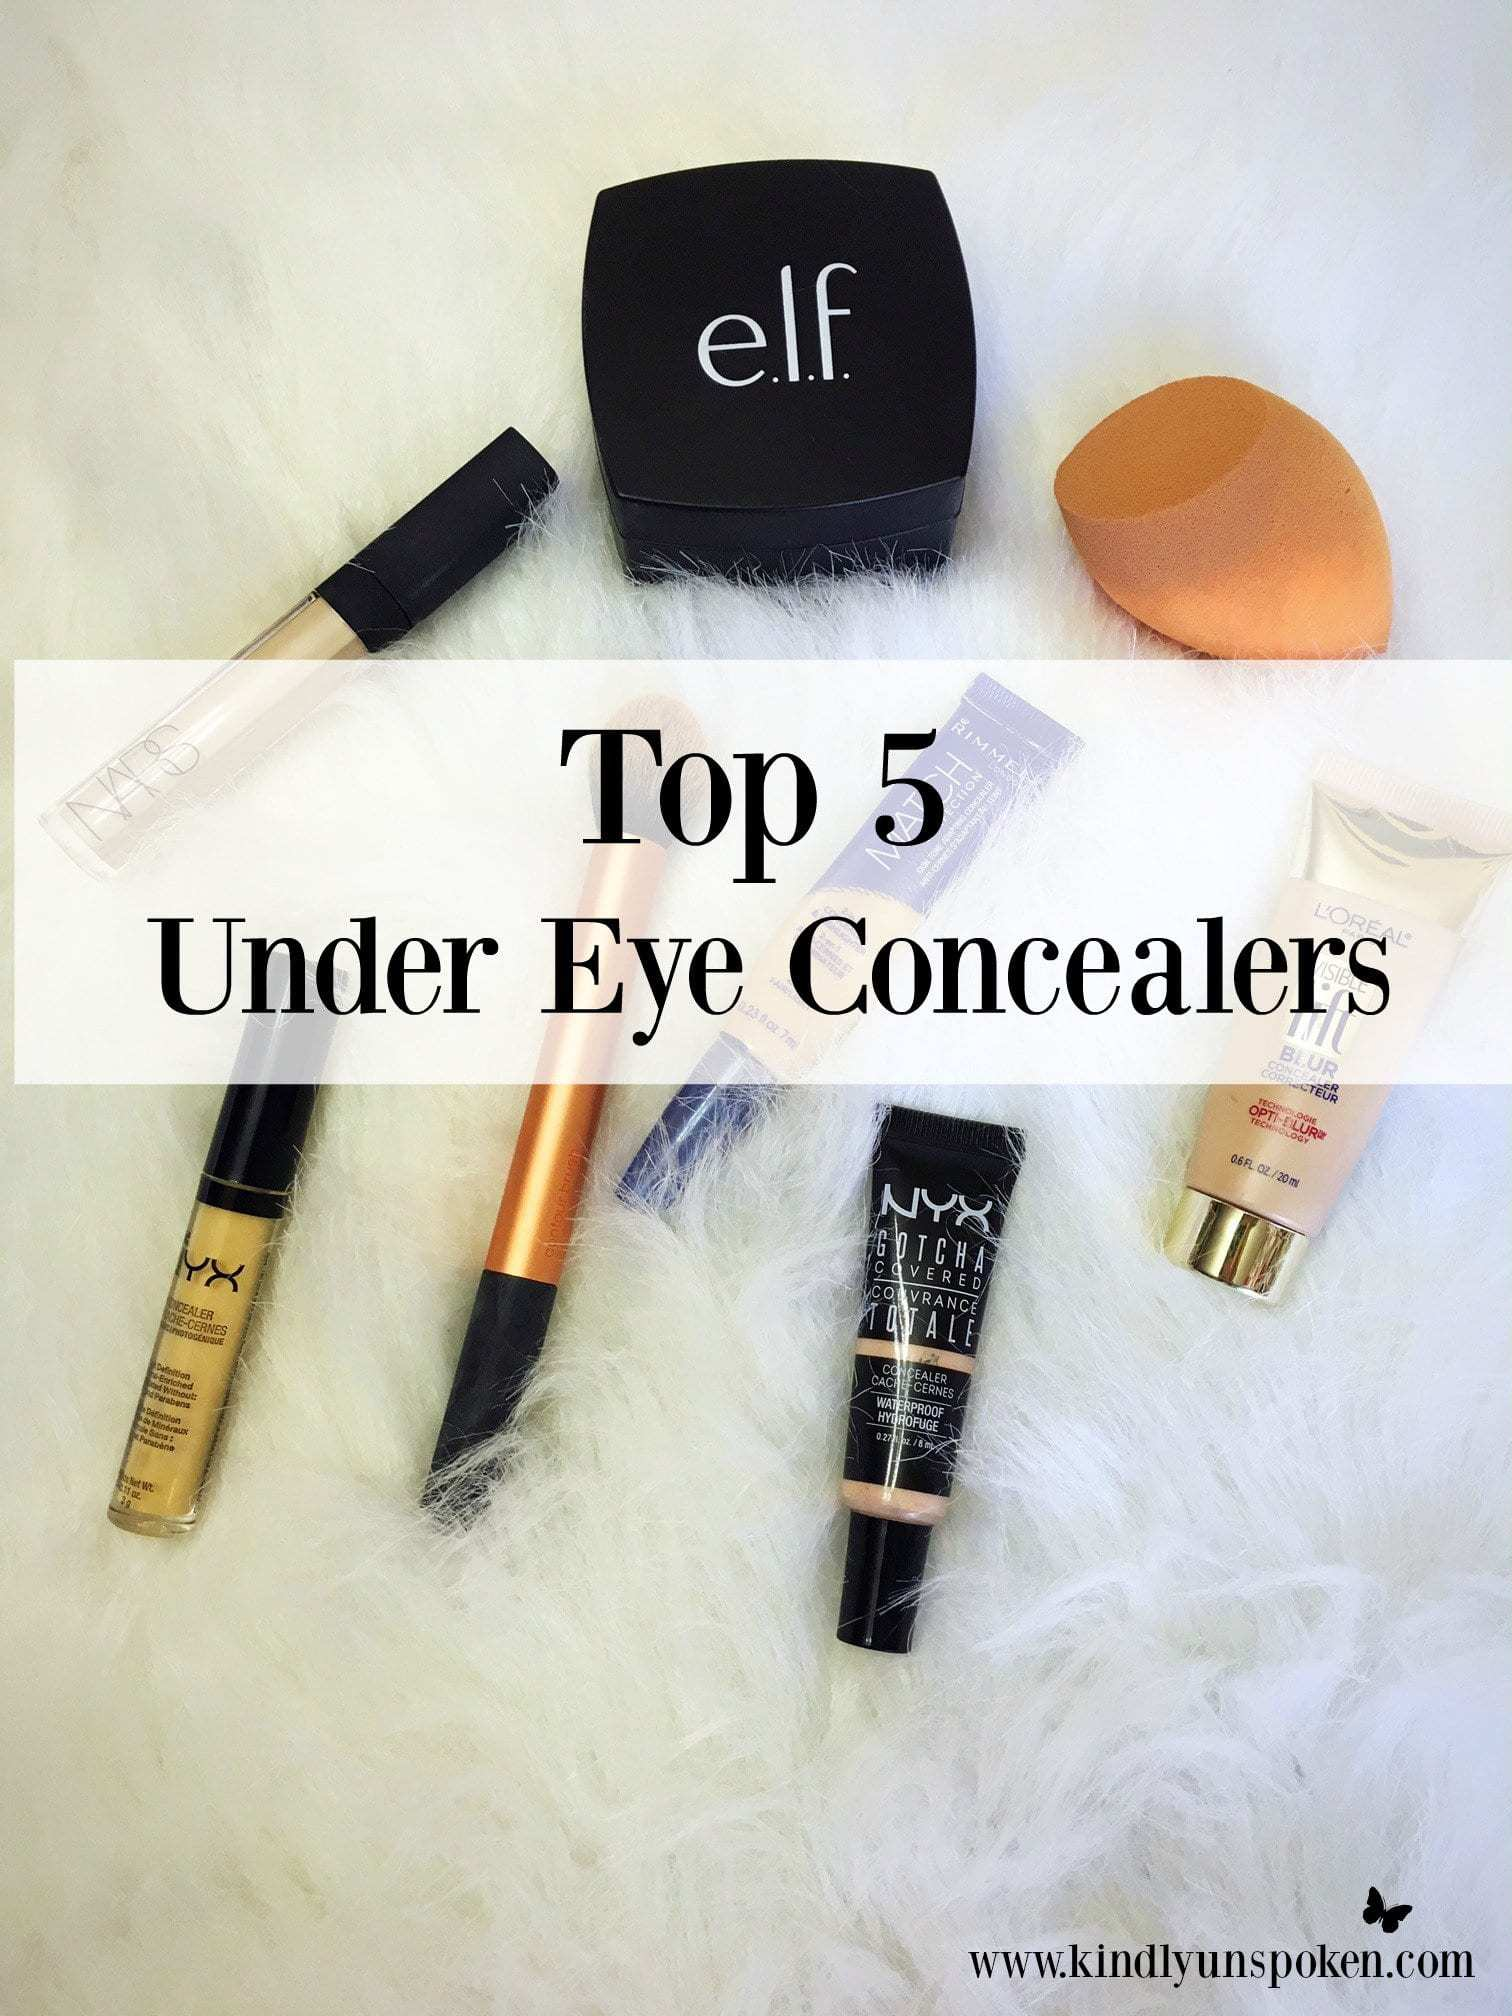 Top 5 Under Eye Concealers for Dark Circles- Struggle with dark circles? Check out my top 5 under eye concealers for covering up pesky dark circles for good!